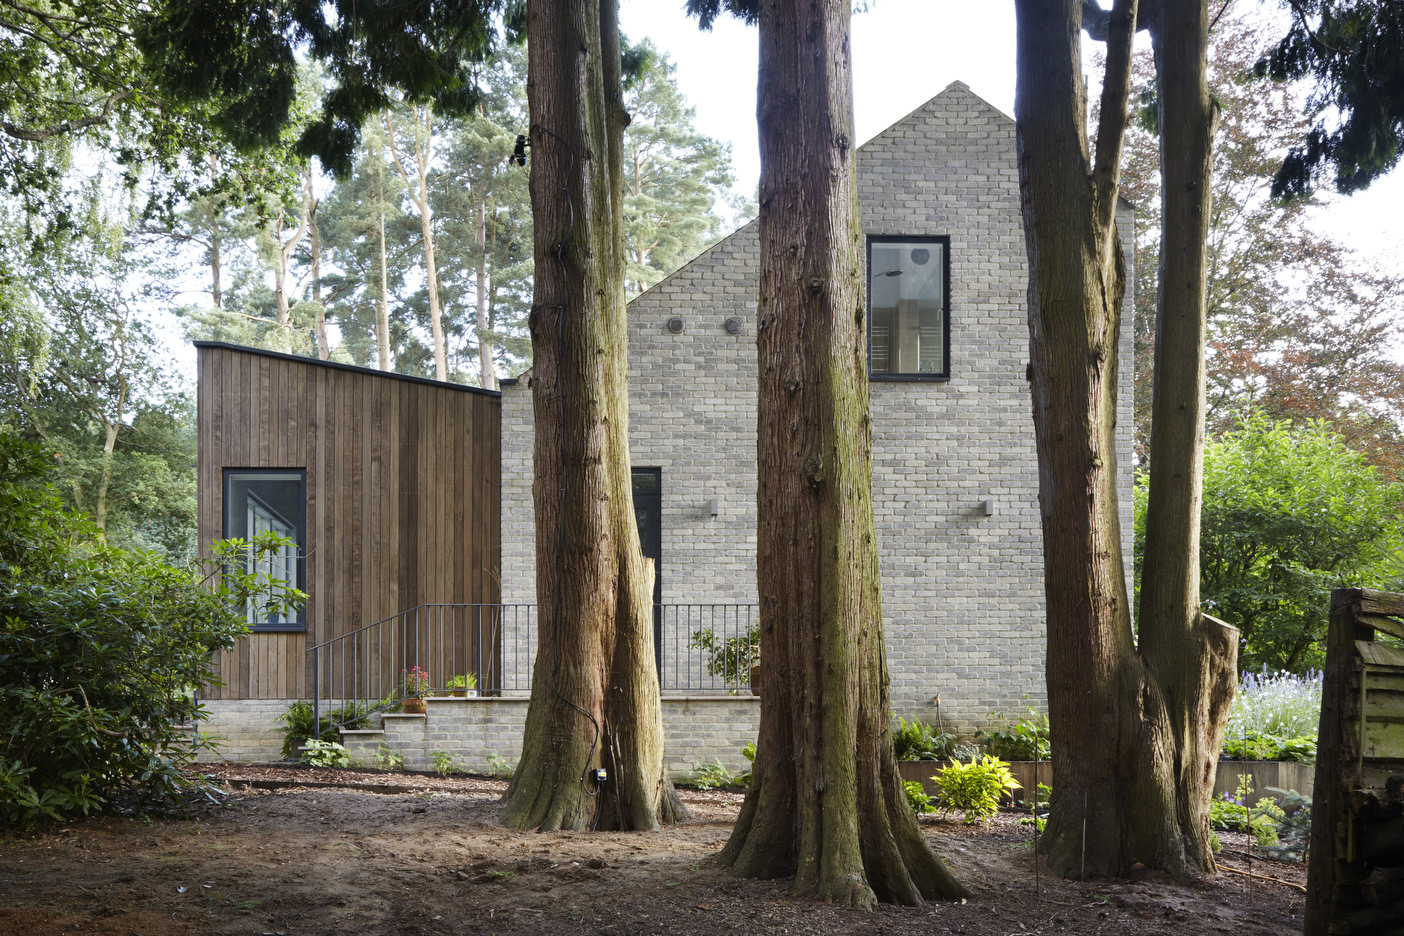 Peter Wilson's new  publication : 'The Modern Timber House in the UK: New Paradigms and Technologies' has included  'House in the Woods'  as a case study for SIPS panel construction. The fully insulated, watertight structure was completed in just ten days for this private house in Hampshire without compromising on either build quality or thermal efficiency.   MORE